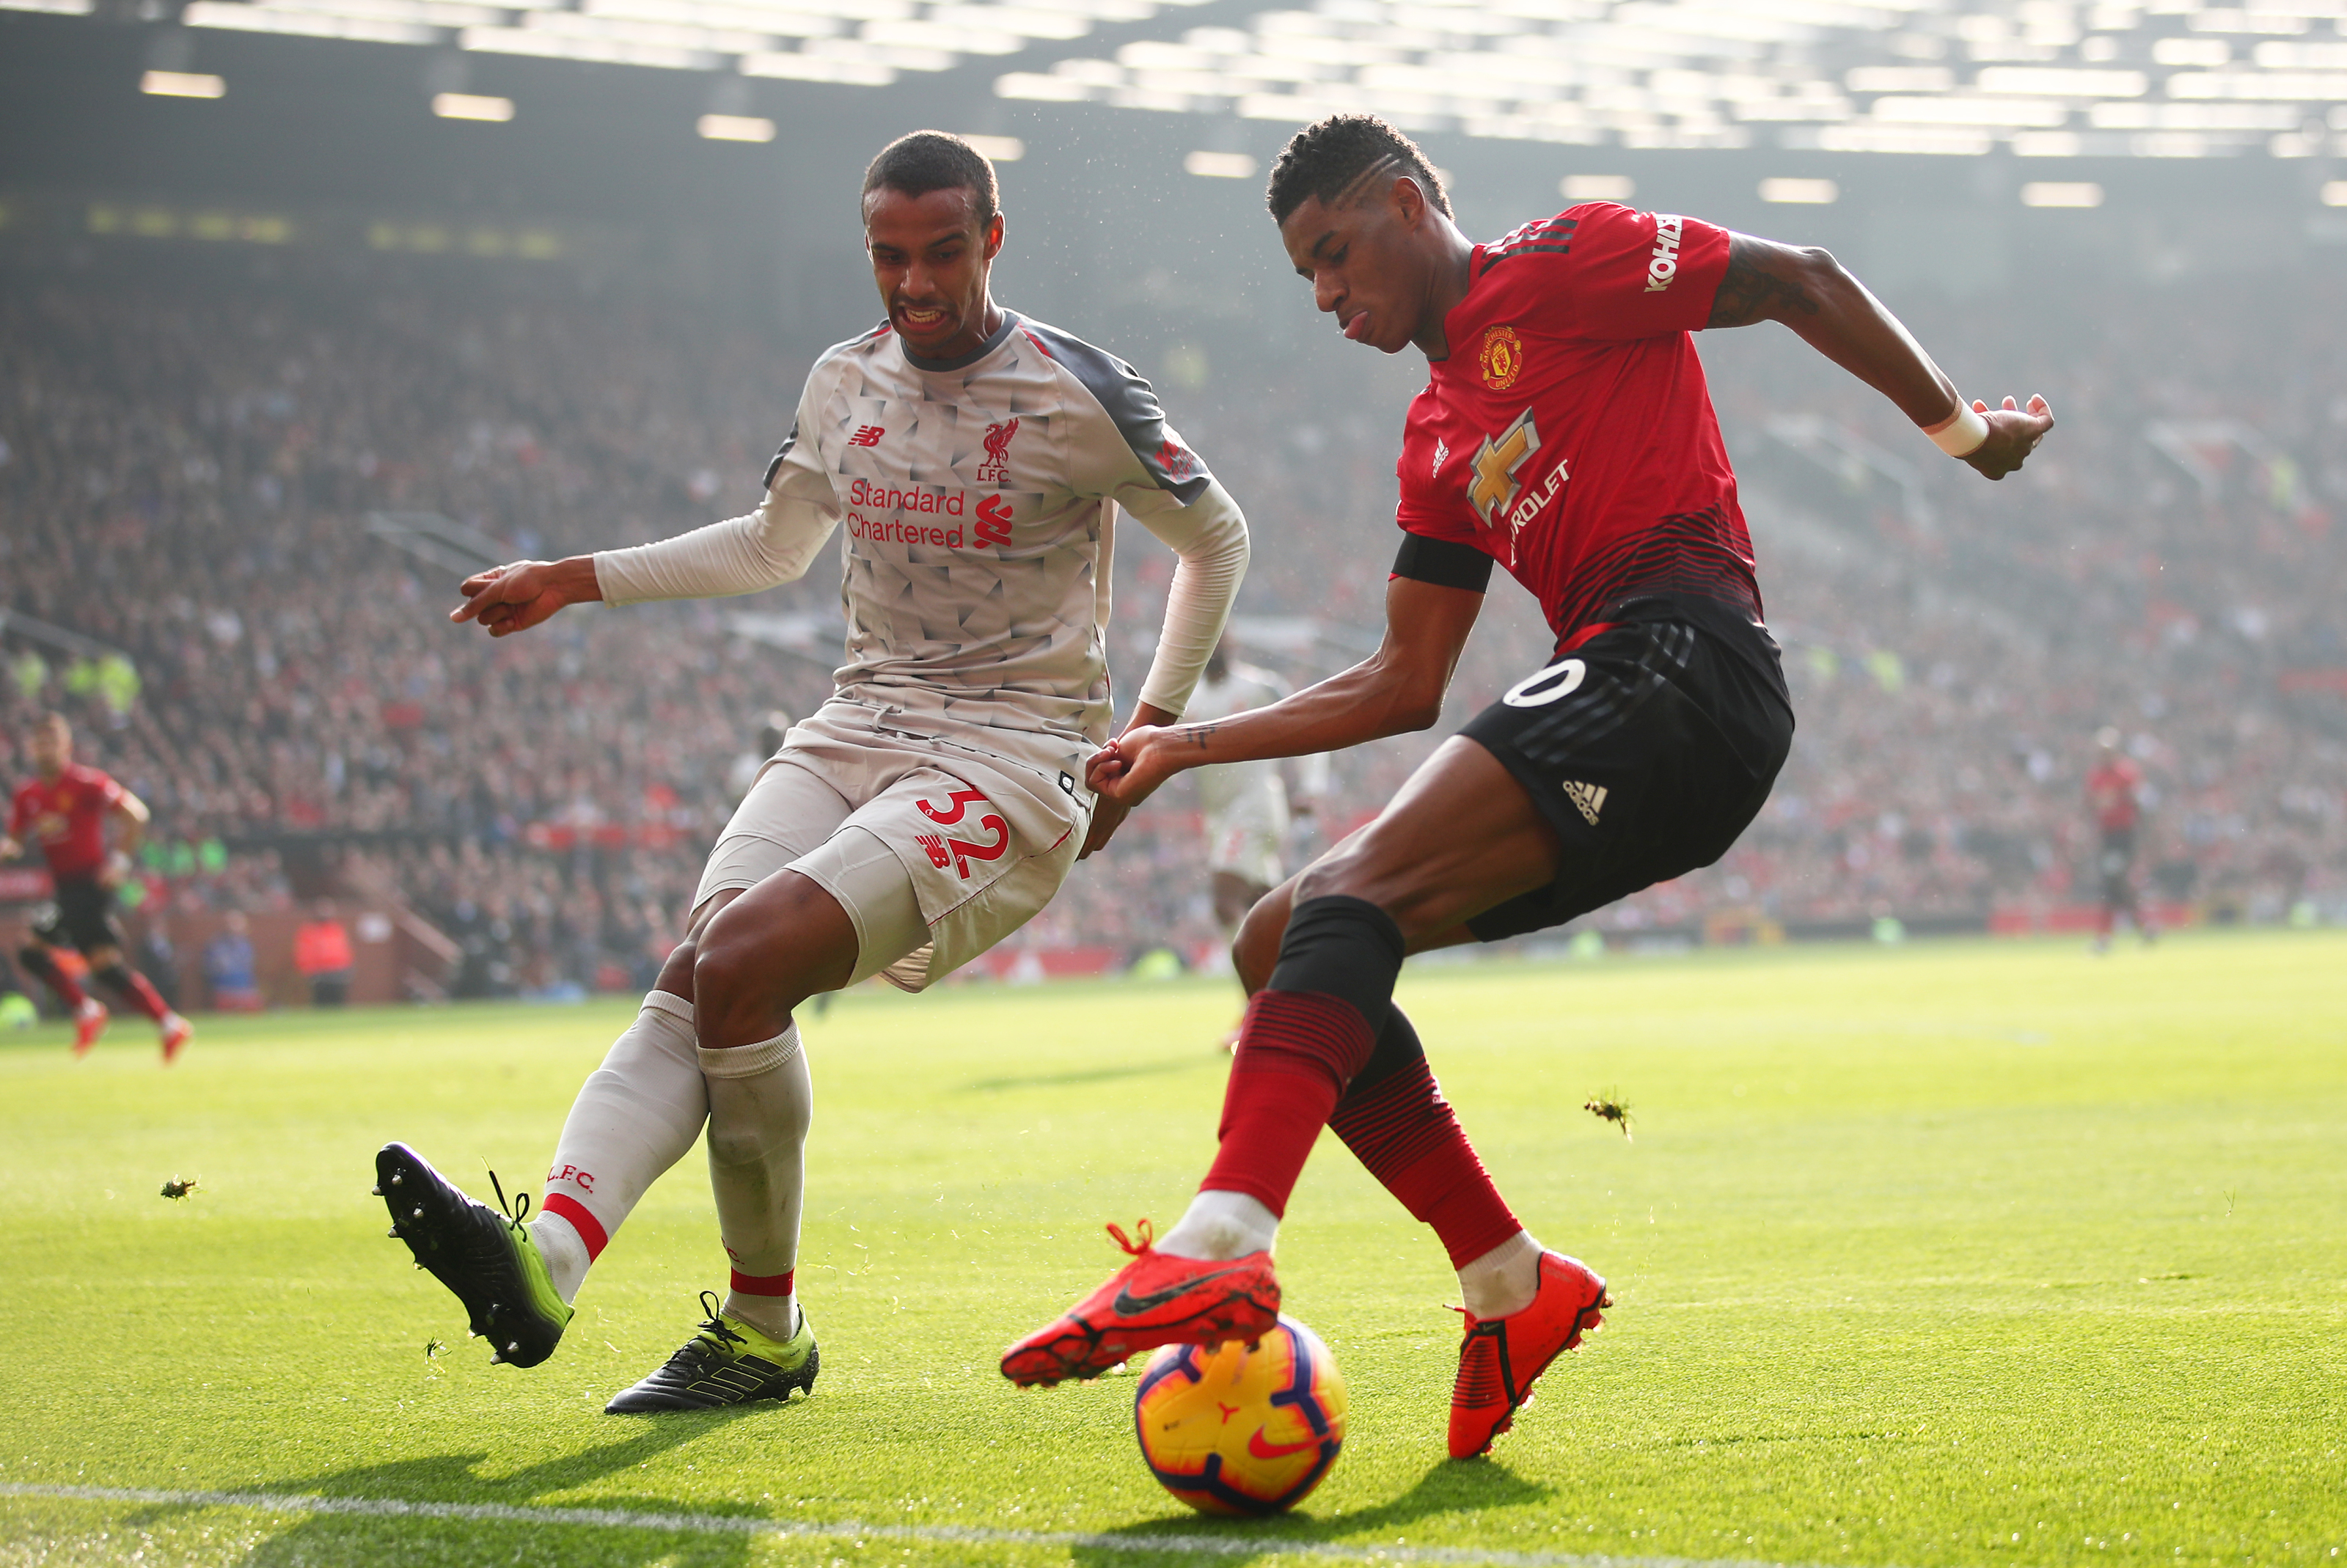 Liverpool V Manchester United Solskjaer Has Marcus Rashford Injury News